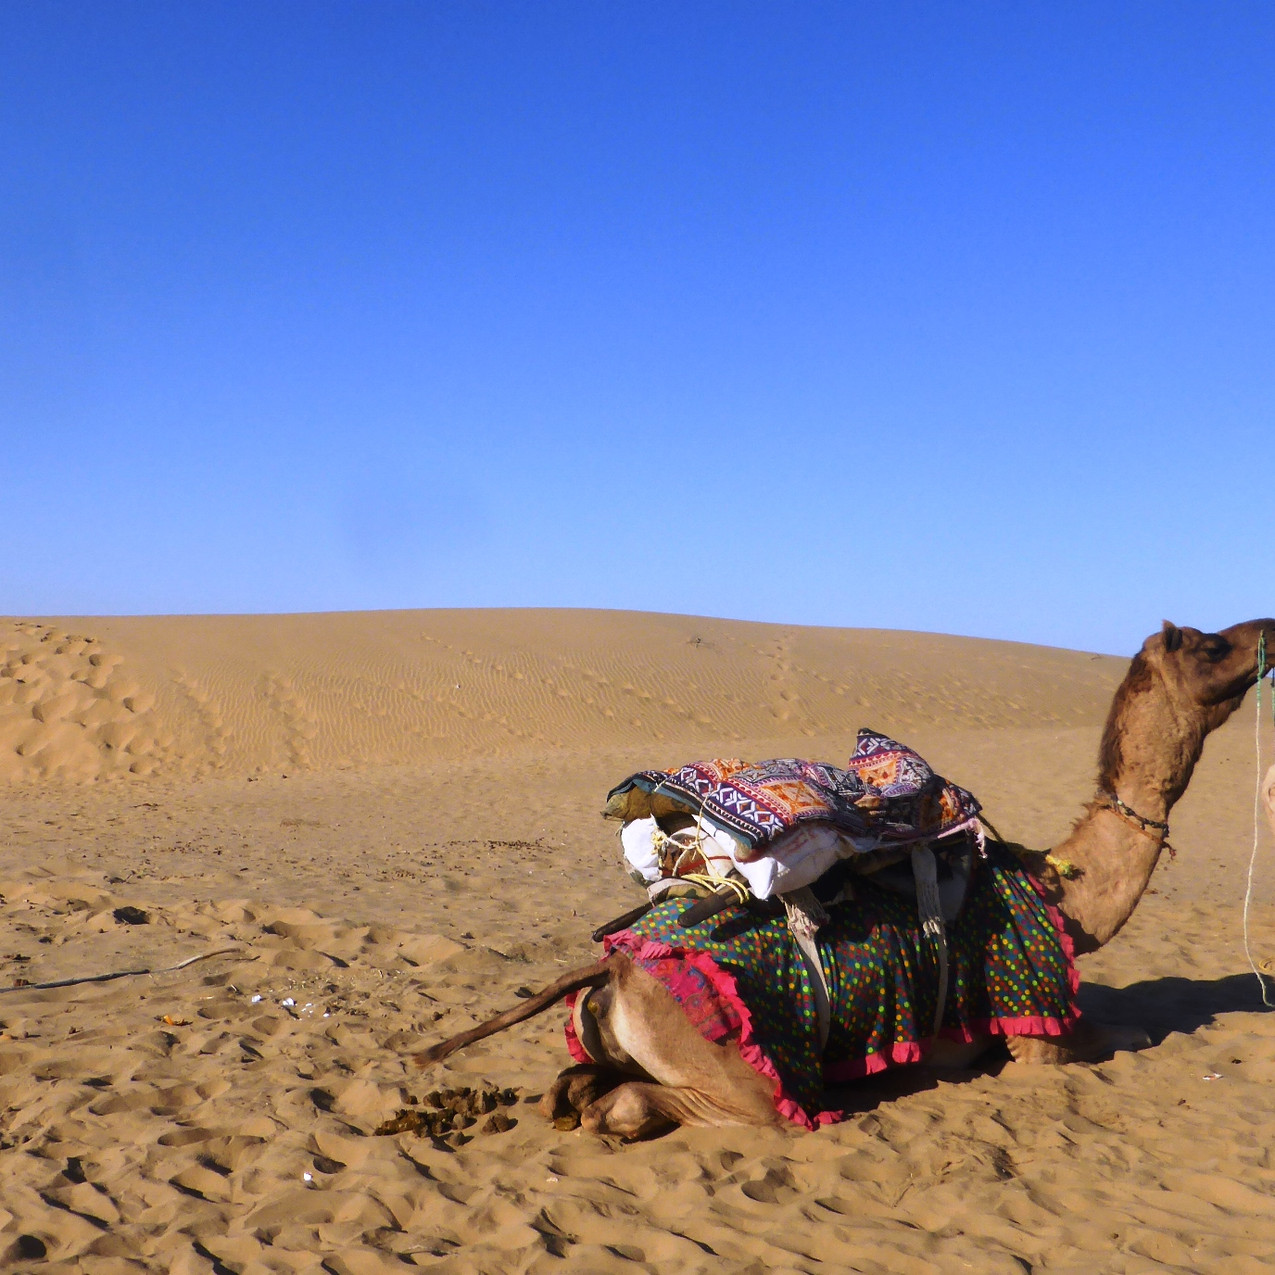 Yes - there will be camel rides!